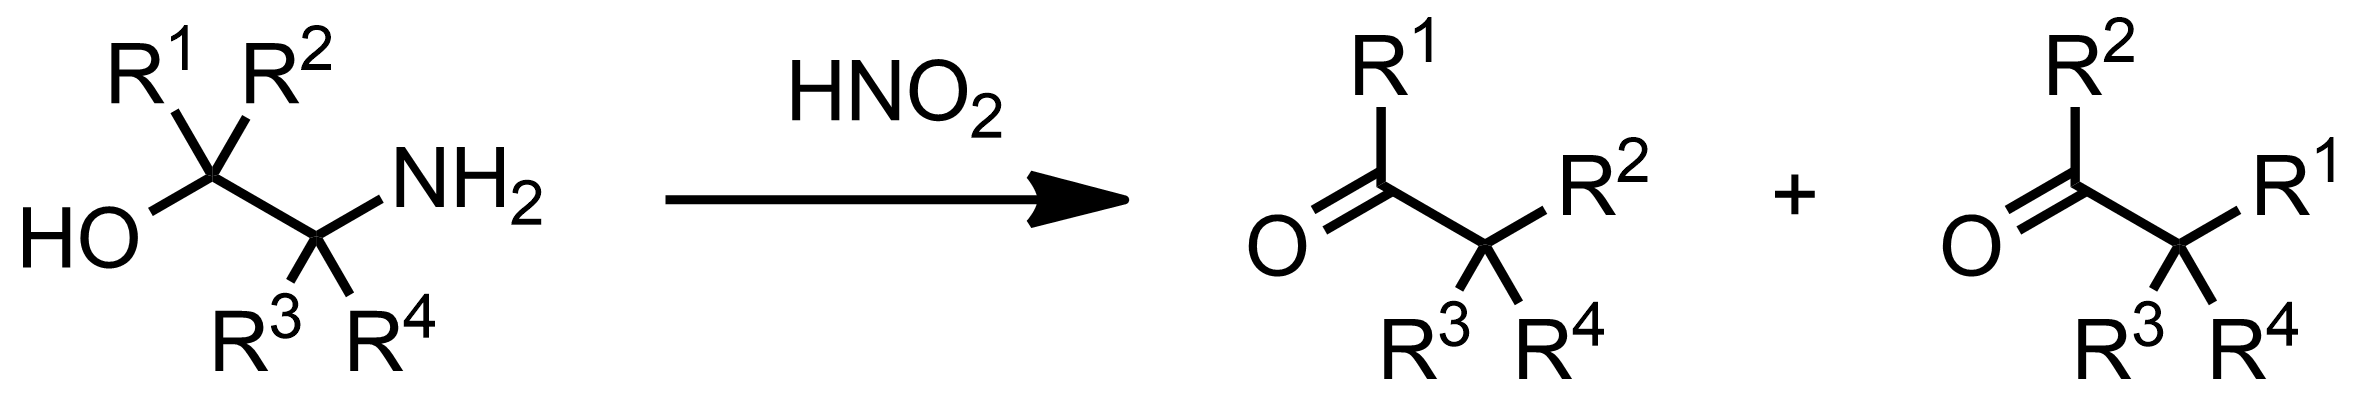 Schematic representation of the Tiffeneau-Demjanov Rearrangement.